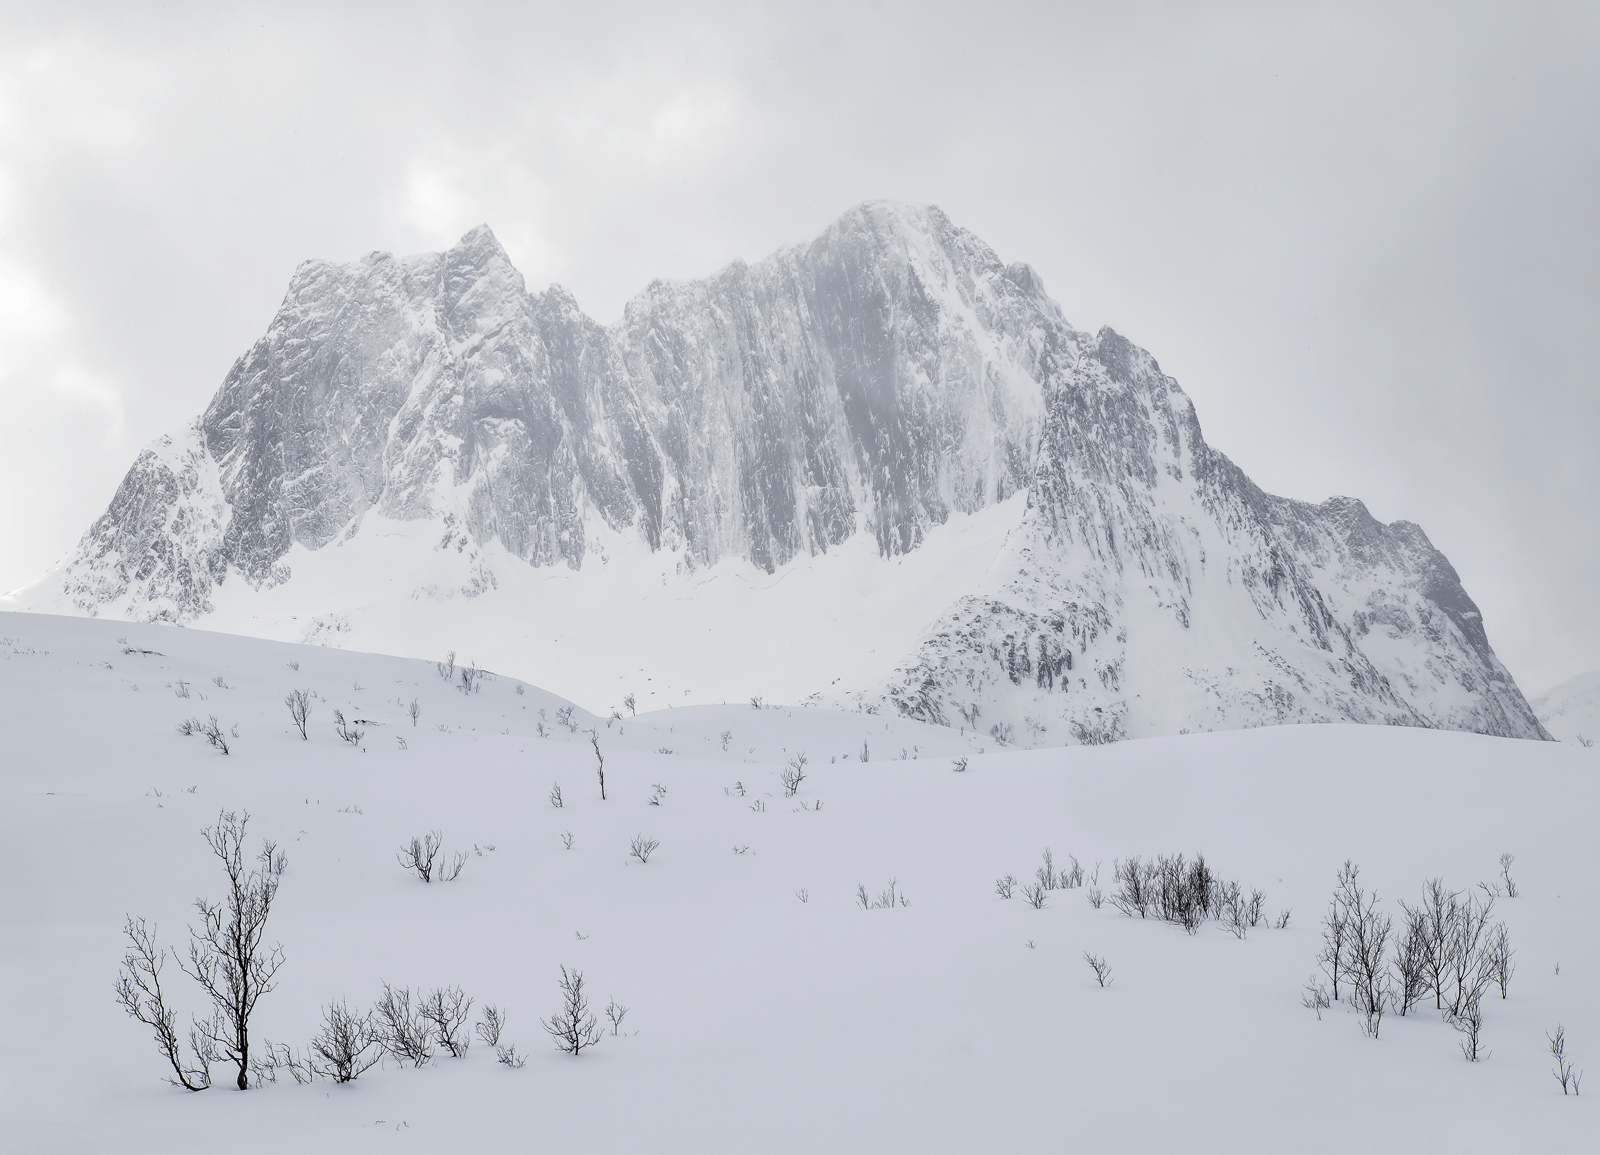 Low subdued sunlight and light sleet combined to render this impressive mountain in recessive shades of grey until it had the...